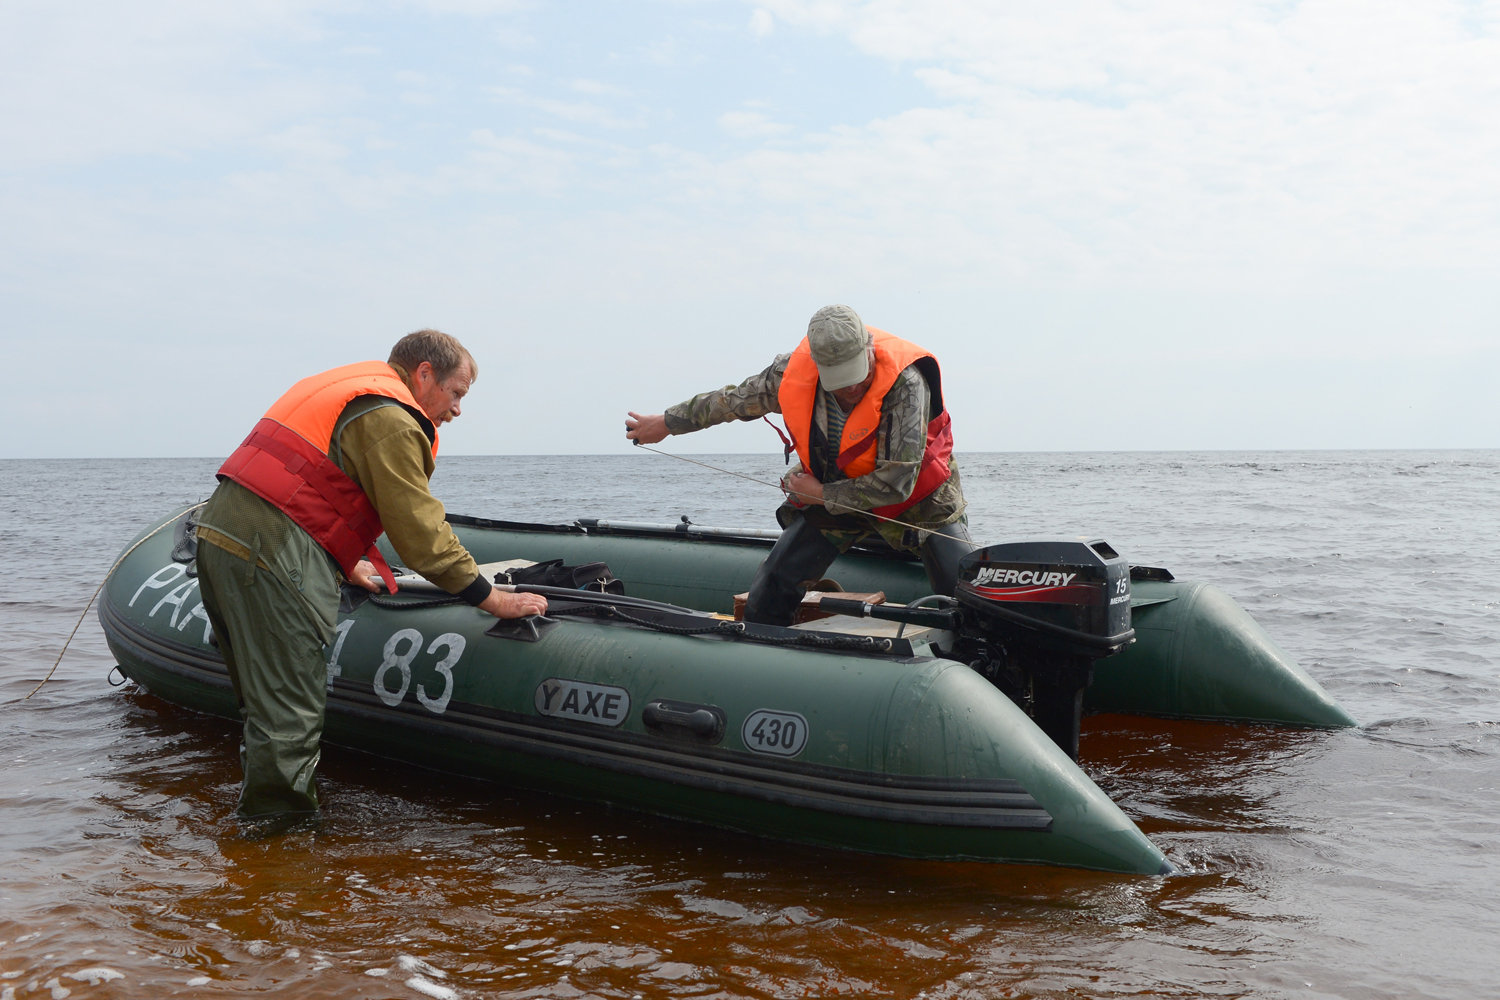 Oceanologist Sergei Klimov working with a colleague